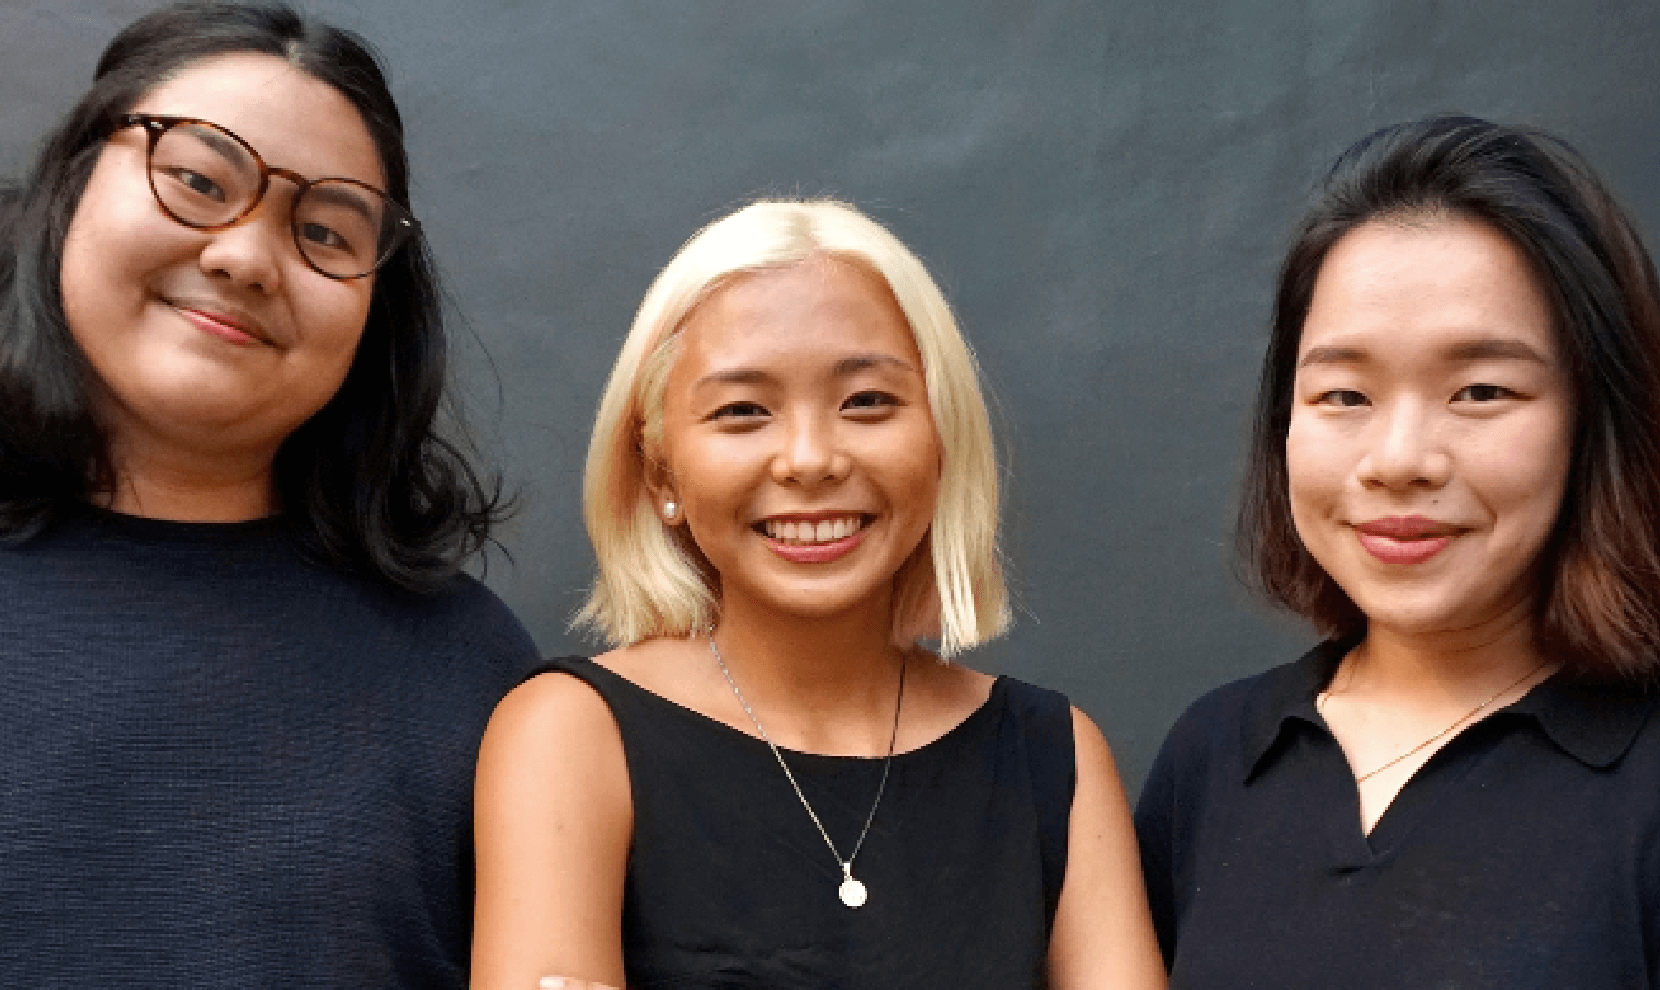 tinder-co-founder-invests-in-philippine-cloud-kitchen-startup-madeat